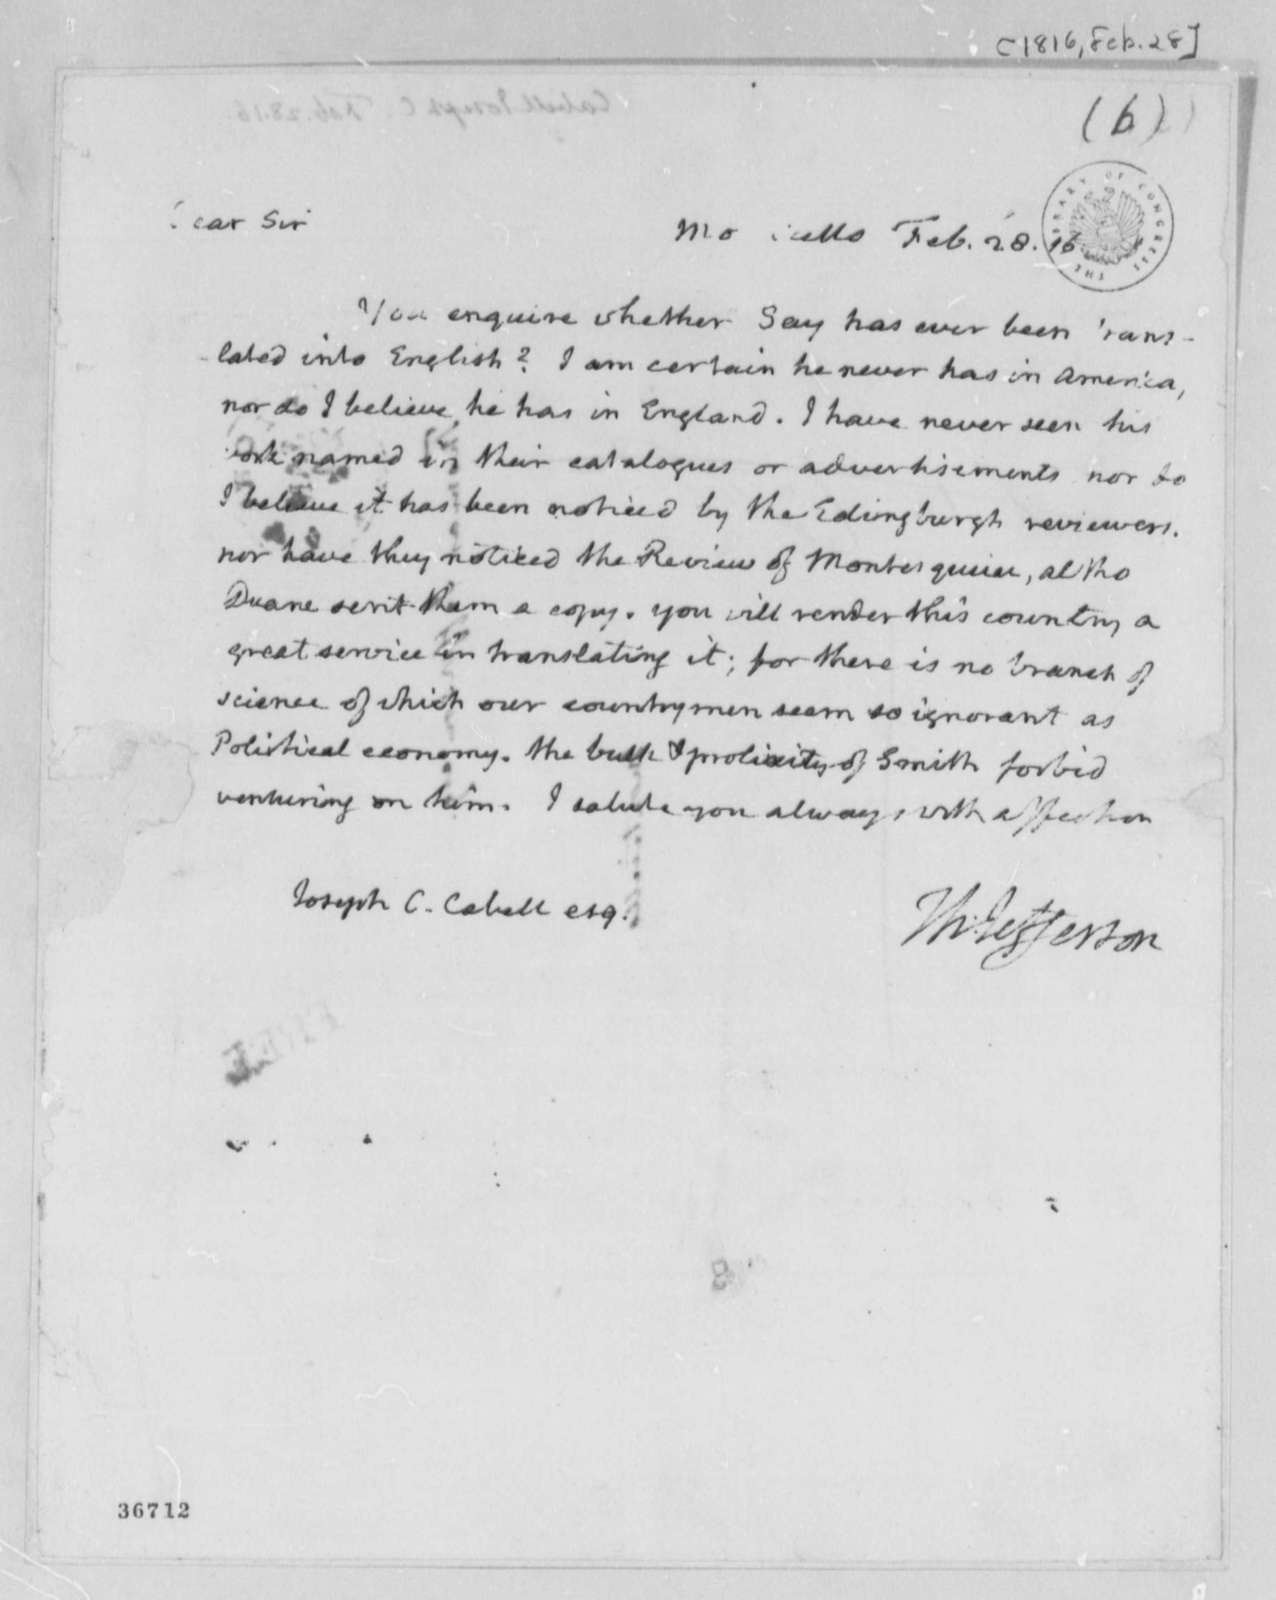 Thomas Jefferson to Joseph C. Cabell, February 28, 1816